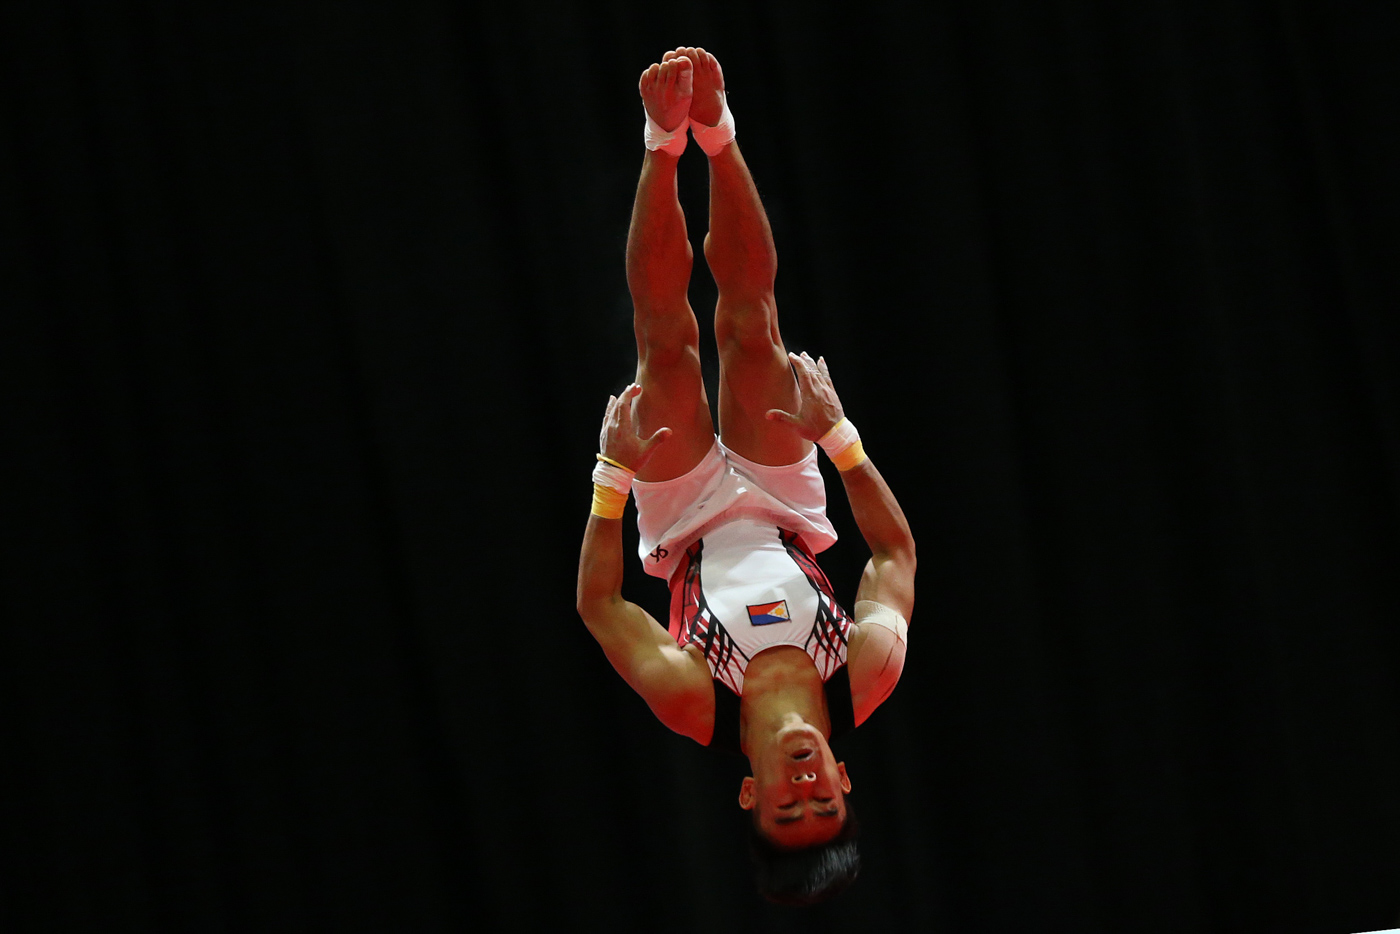 Gymnastics floor women